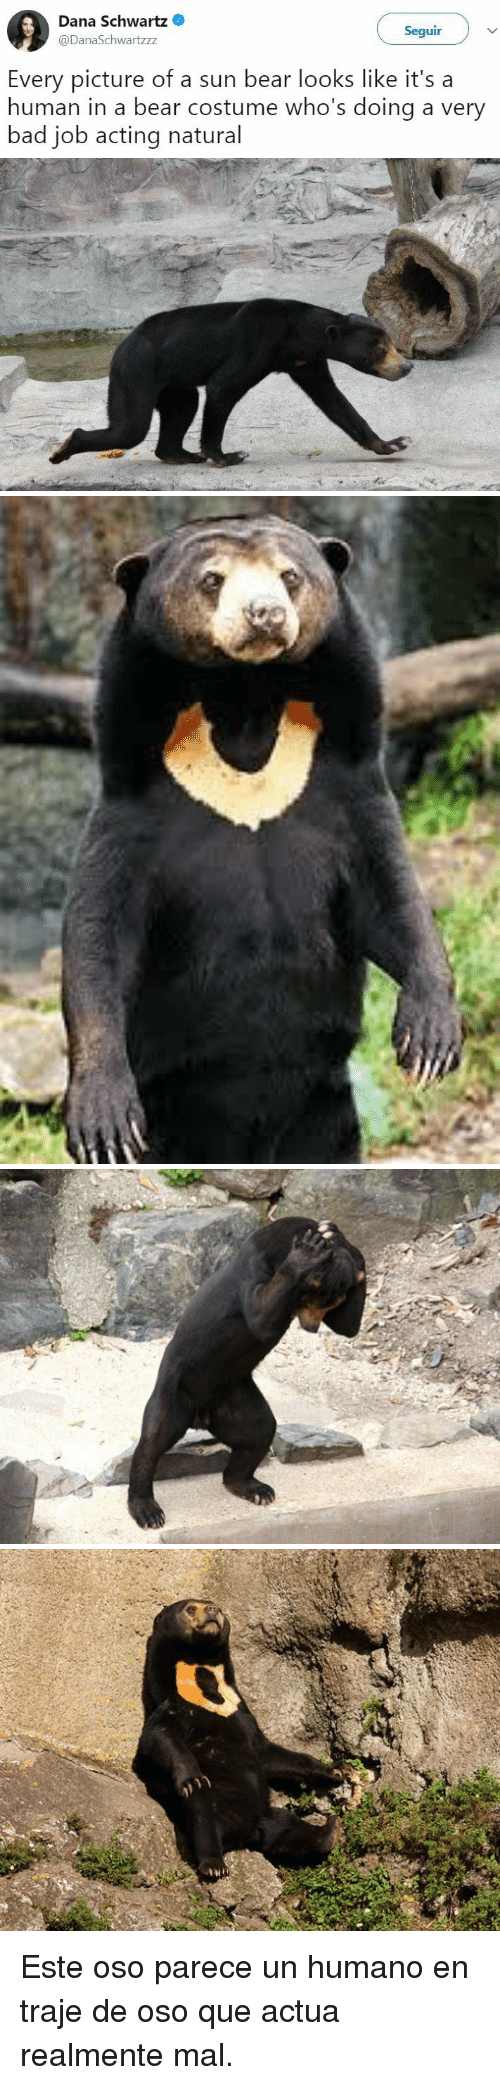 Bad, Bear, and Acting: Dana Schwartz  @DanaSchwartzzz  Seguir  Every picture of a sun bear looks like it's a  human in a bear costume who's doing a very  bad job acting natural <p>Este oso parece un humano en traje de oso que actua realmente mal.</p>